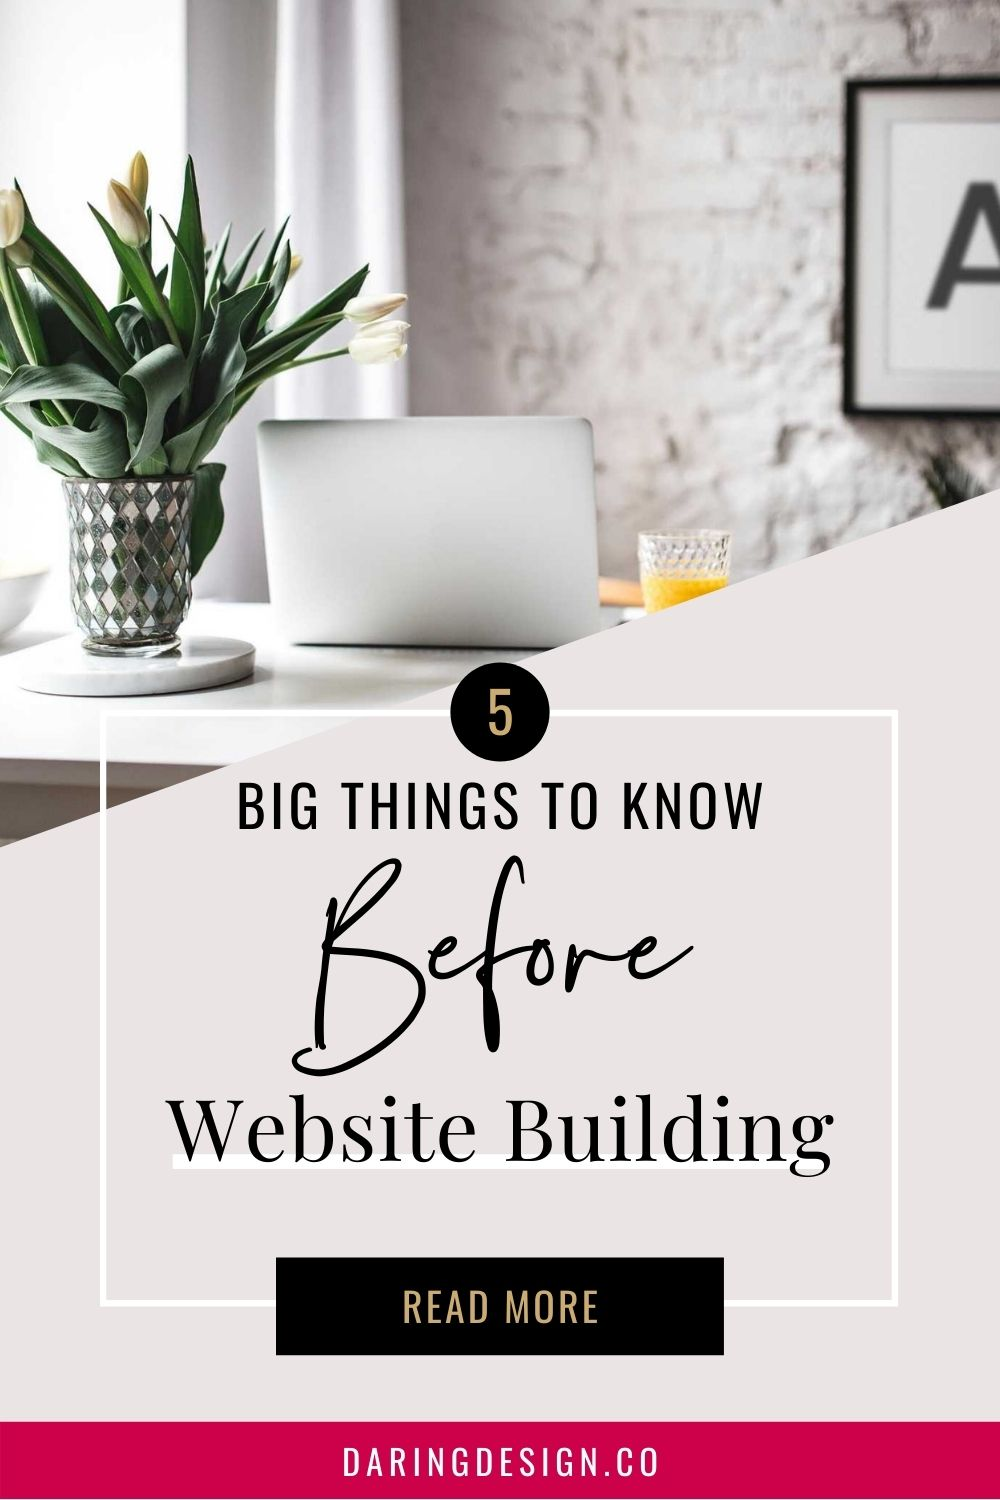 5 Big Things To Know Before Website Building